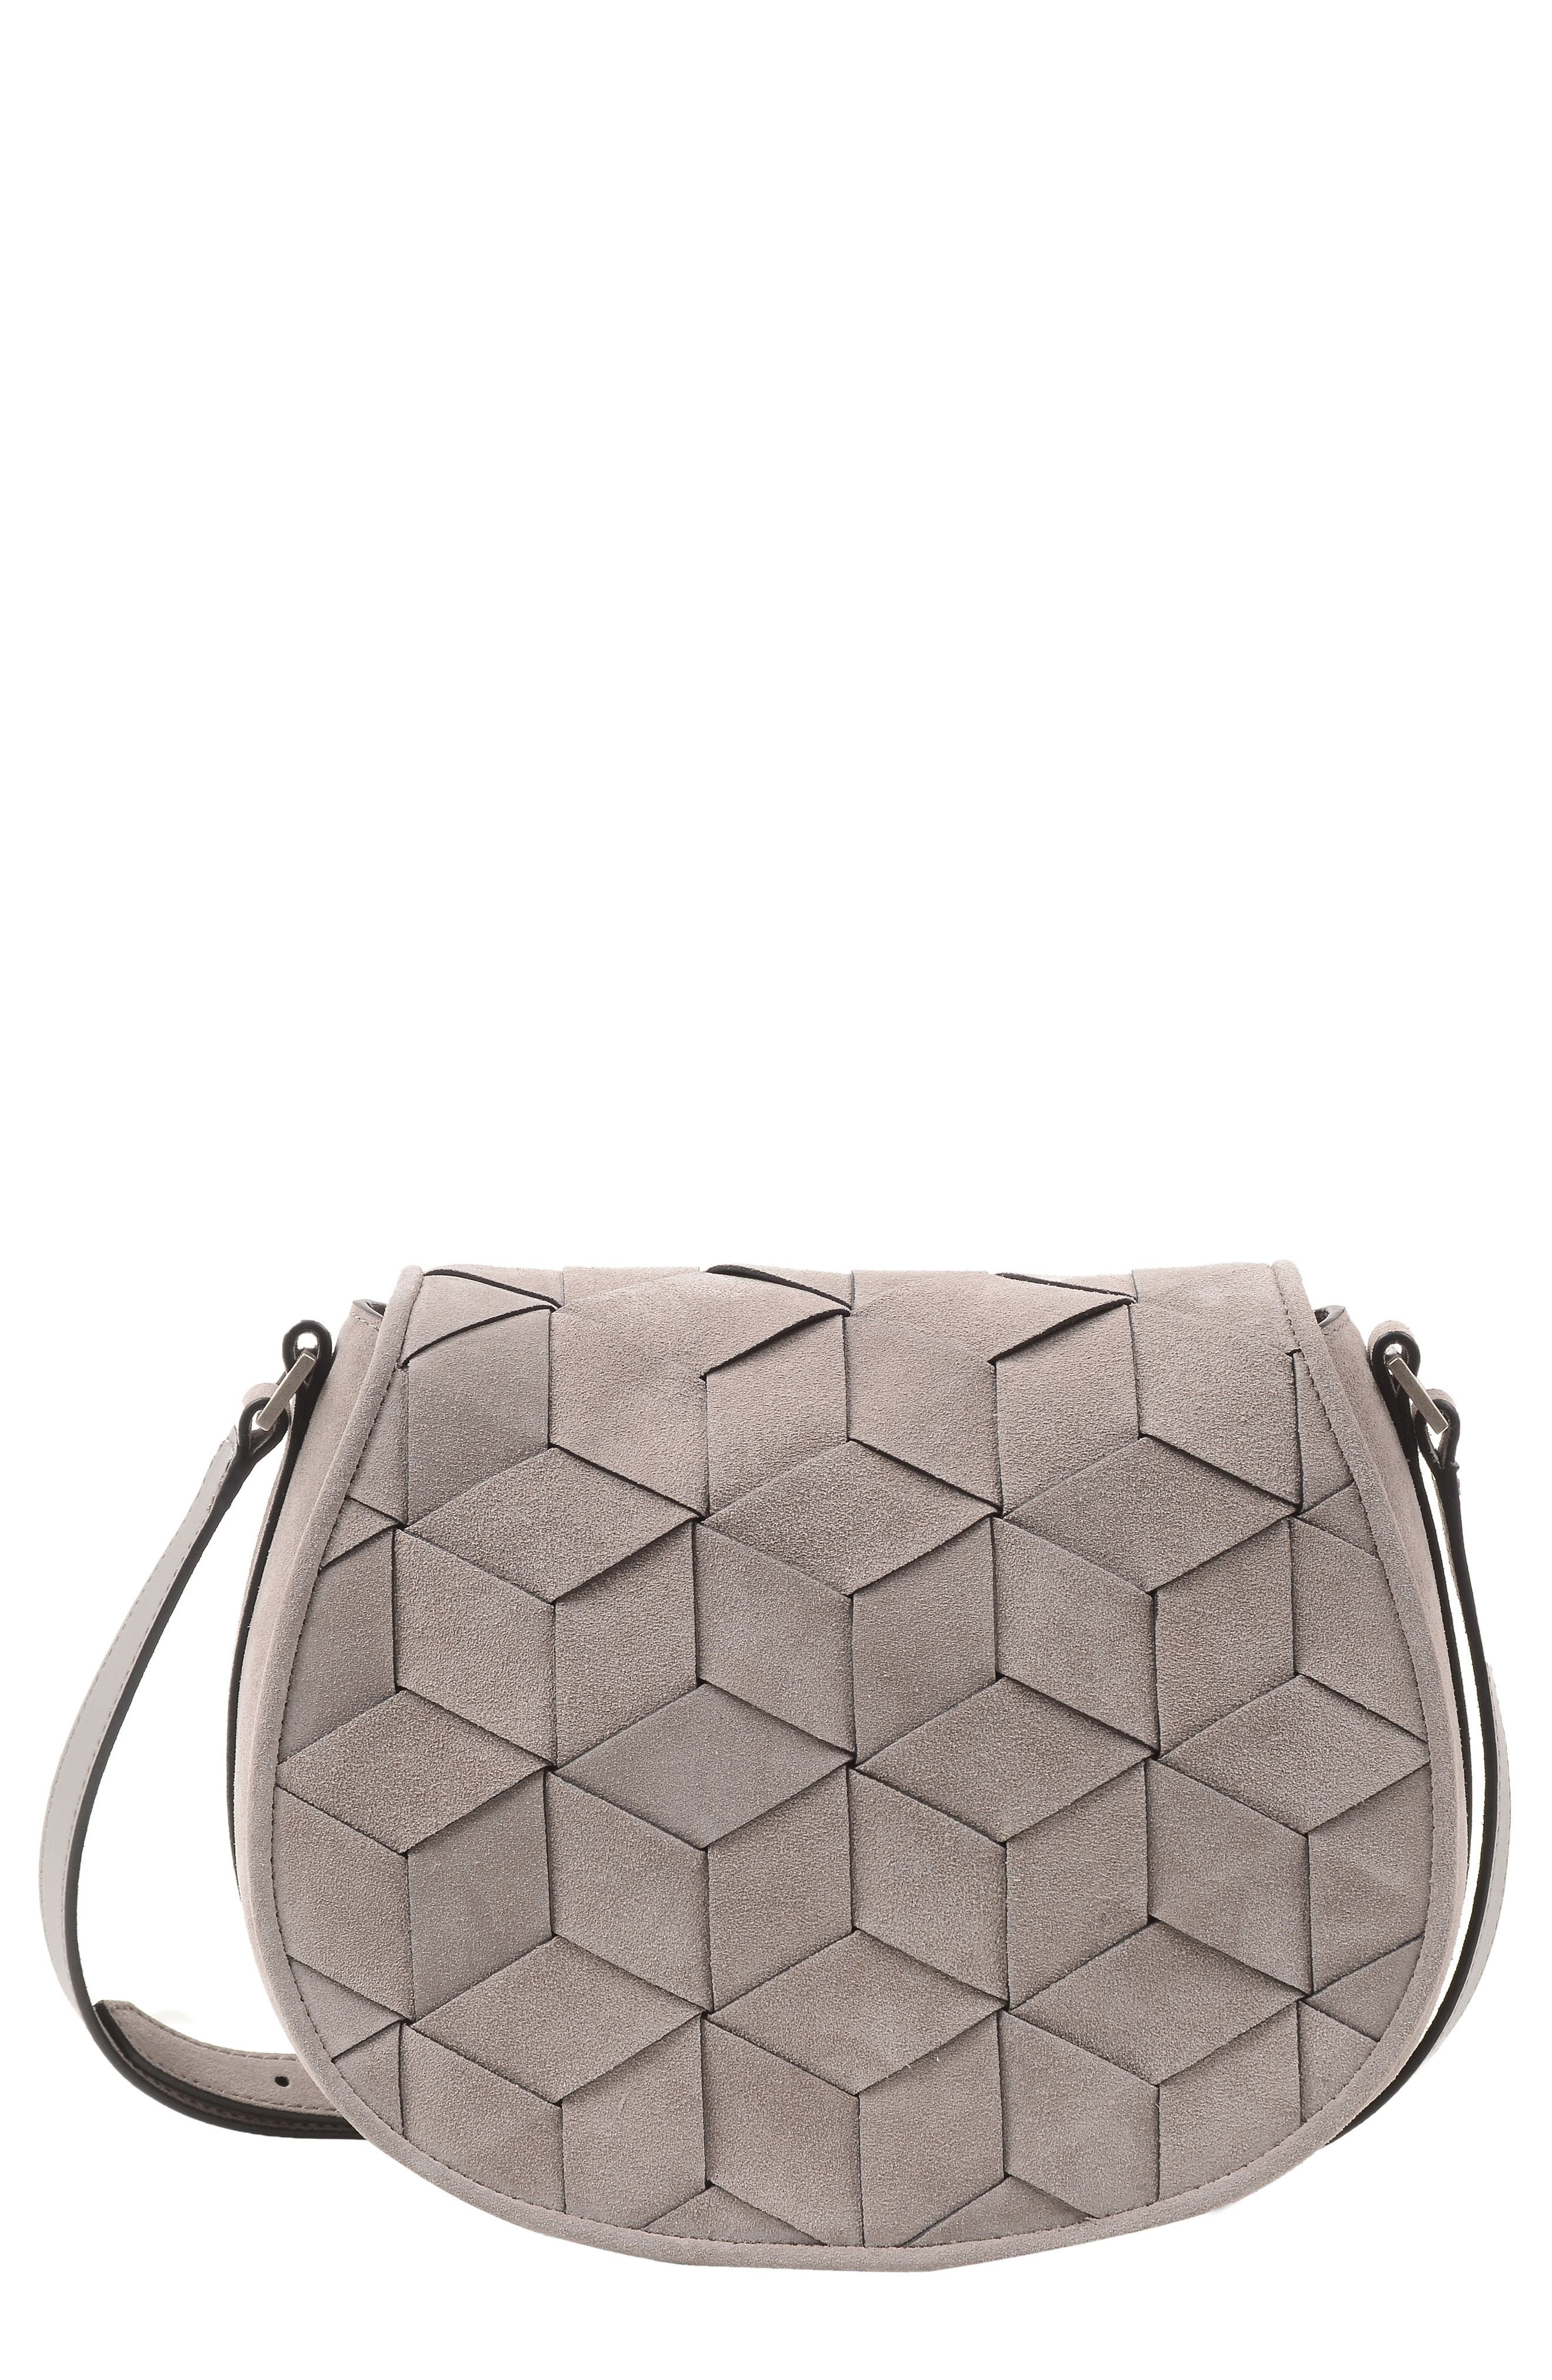 WELDEN ESCAPADE SUEDE SADDLE BAG - GREY